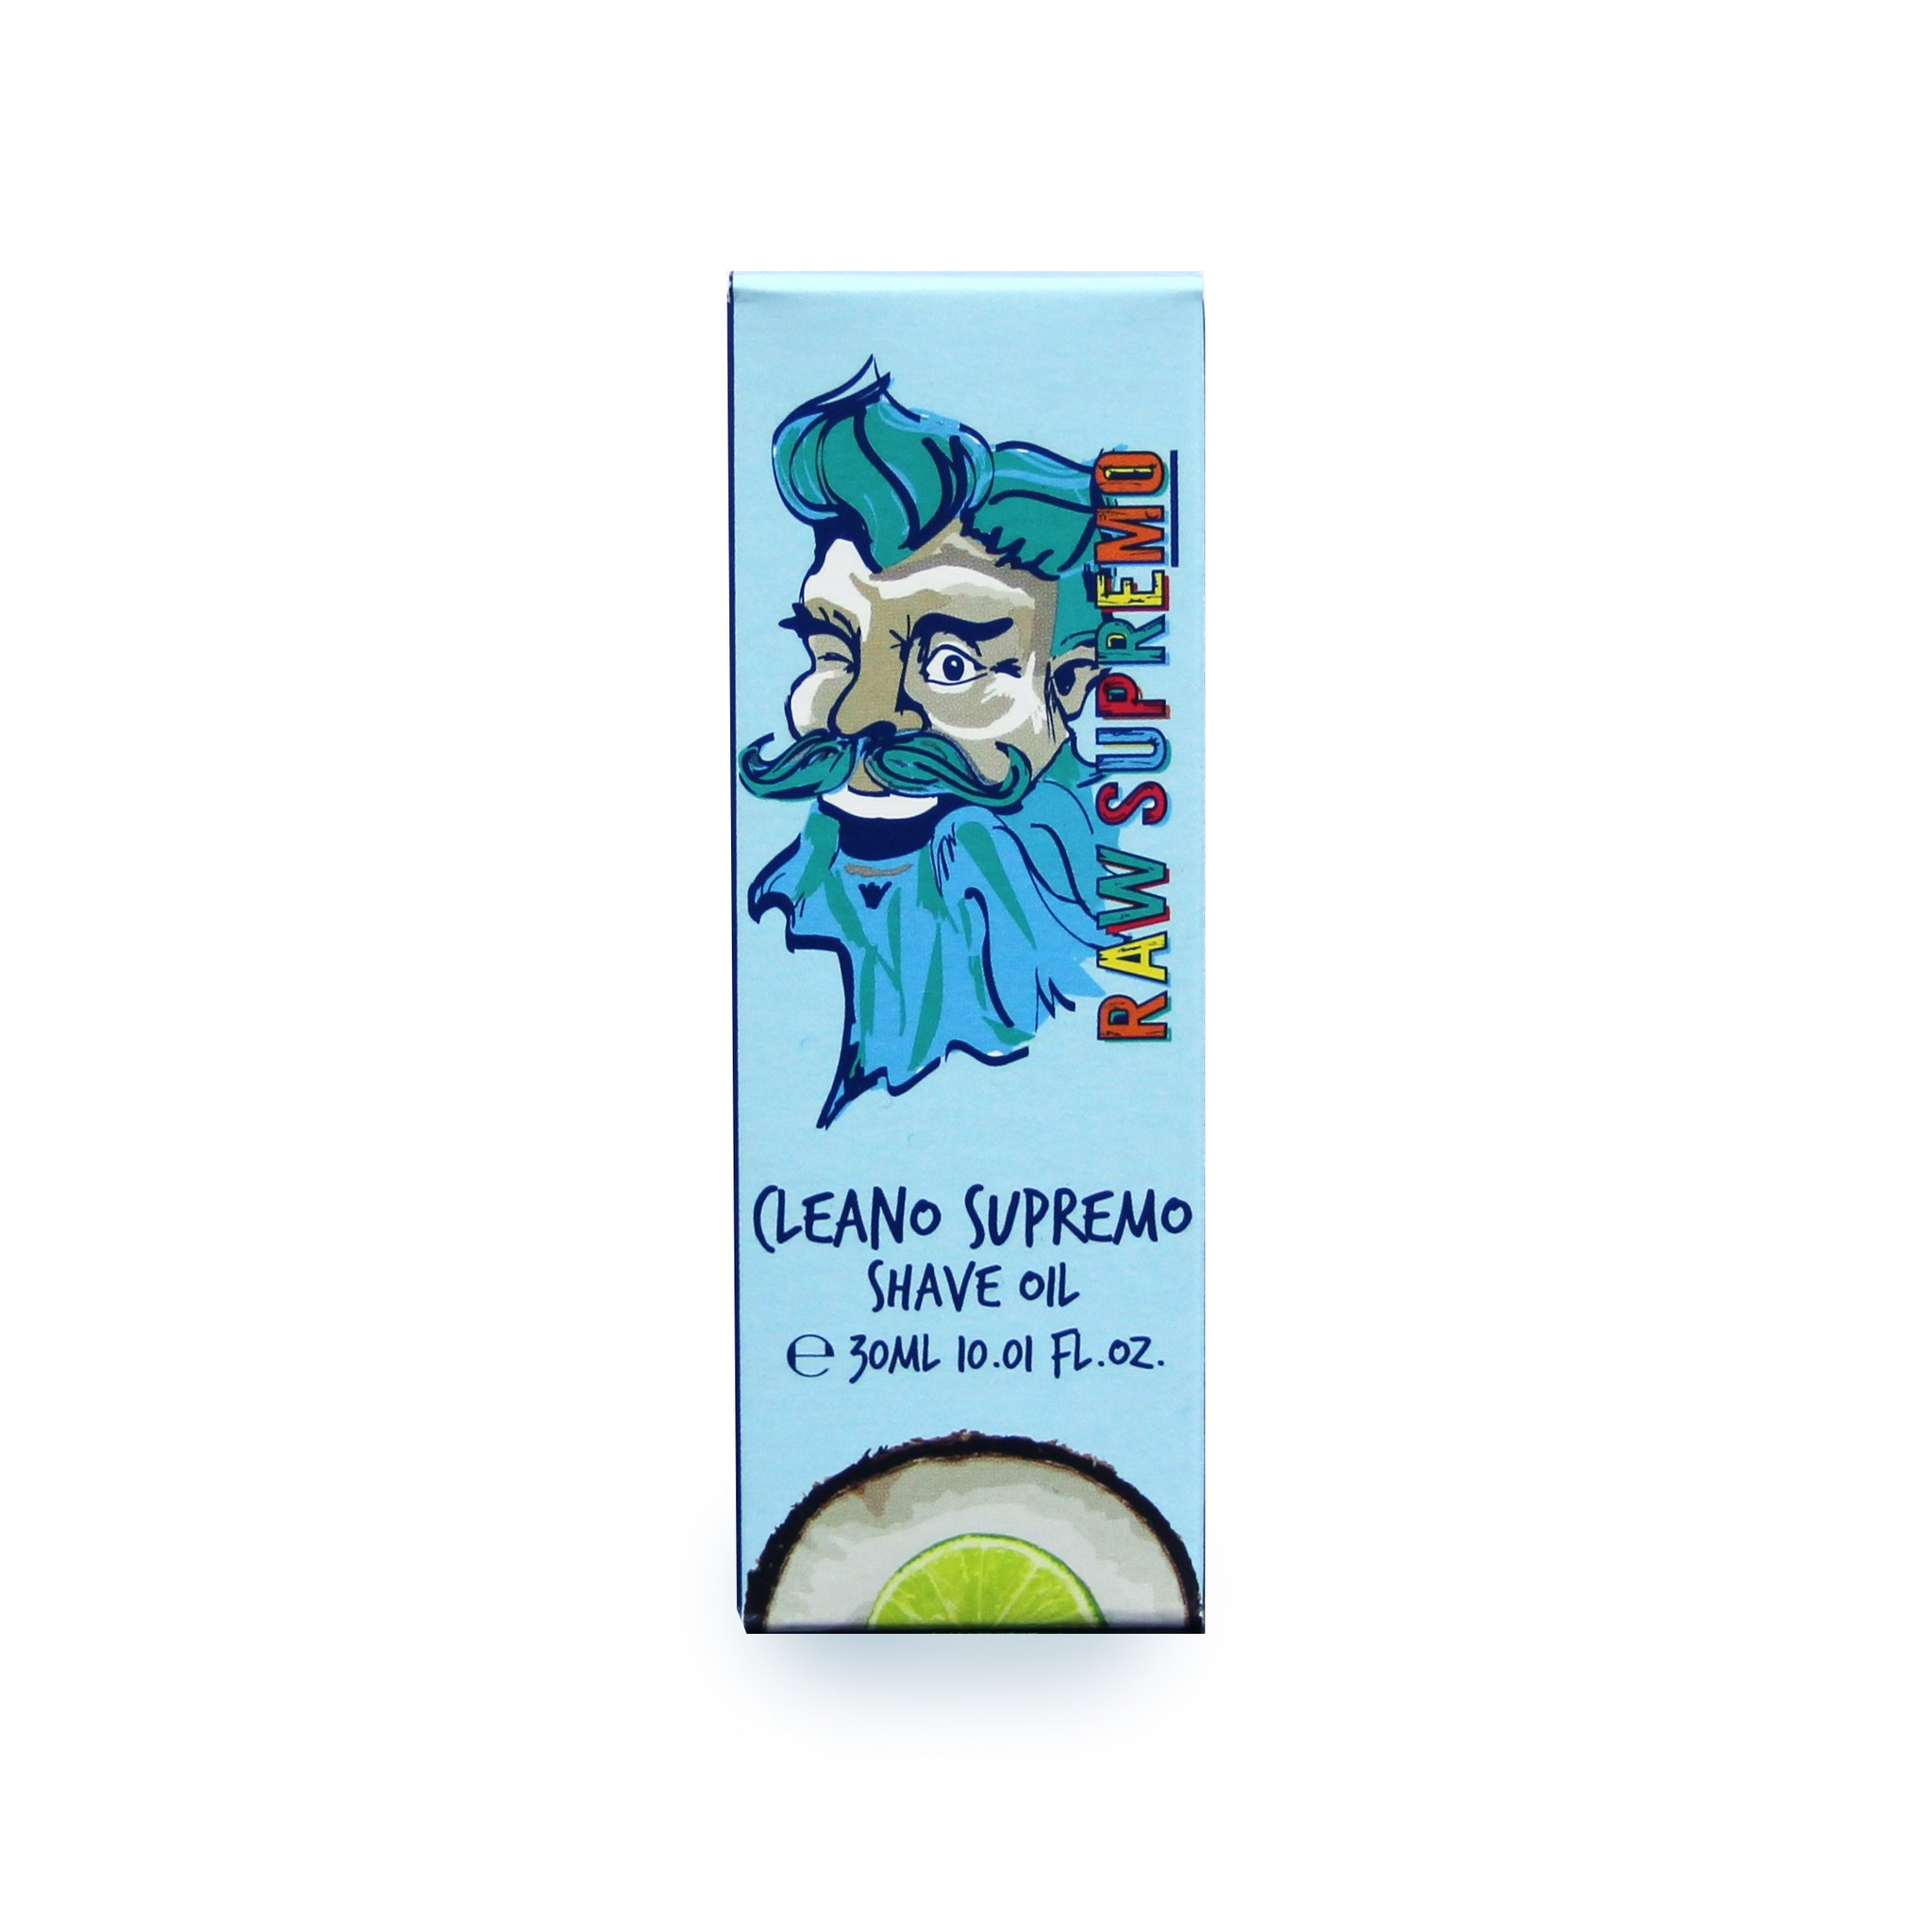 Raw Supremo - Cleano Supremo Shaving Oil - Olej na holenie, 30ml